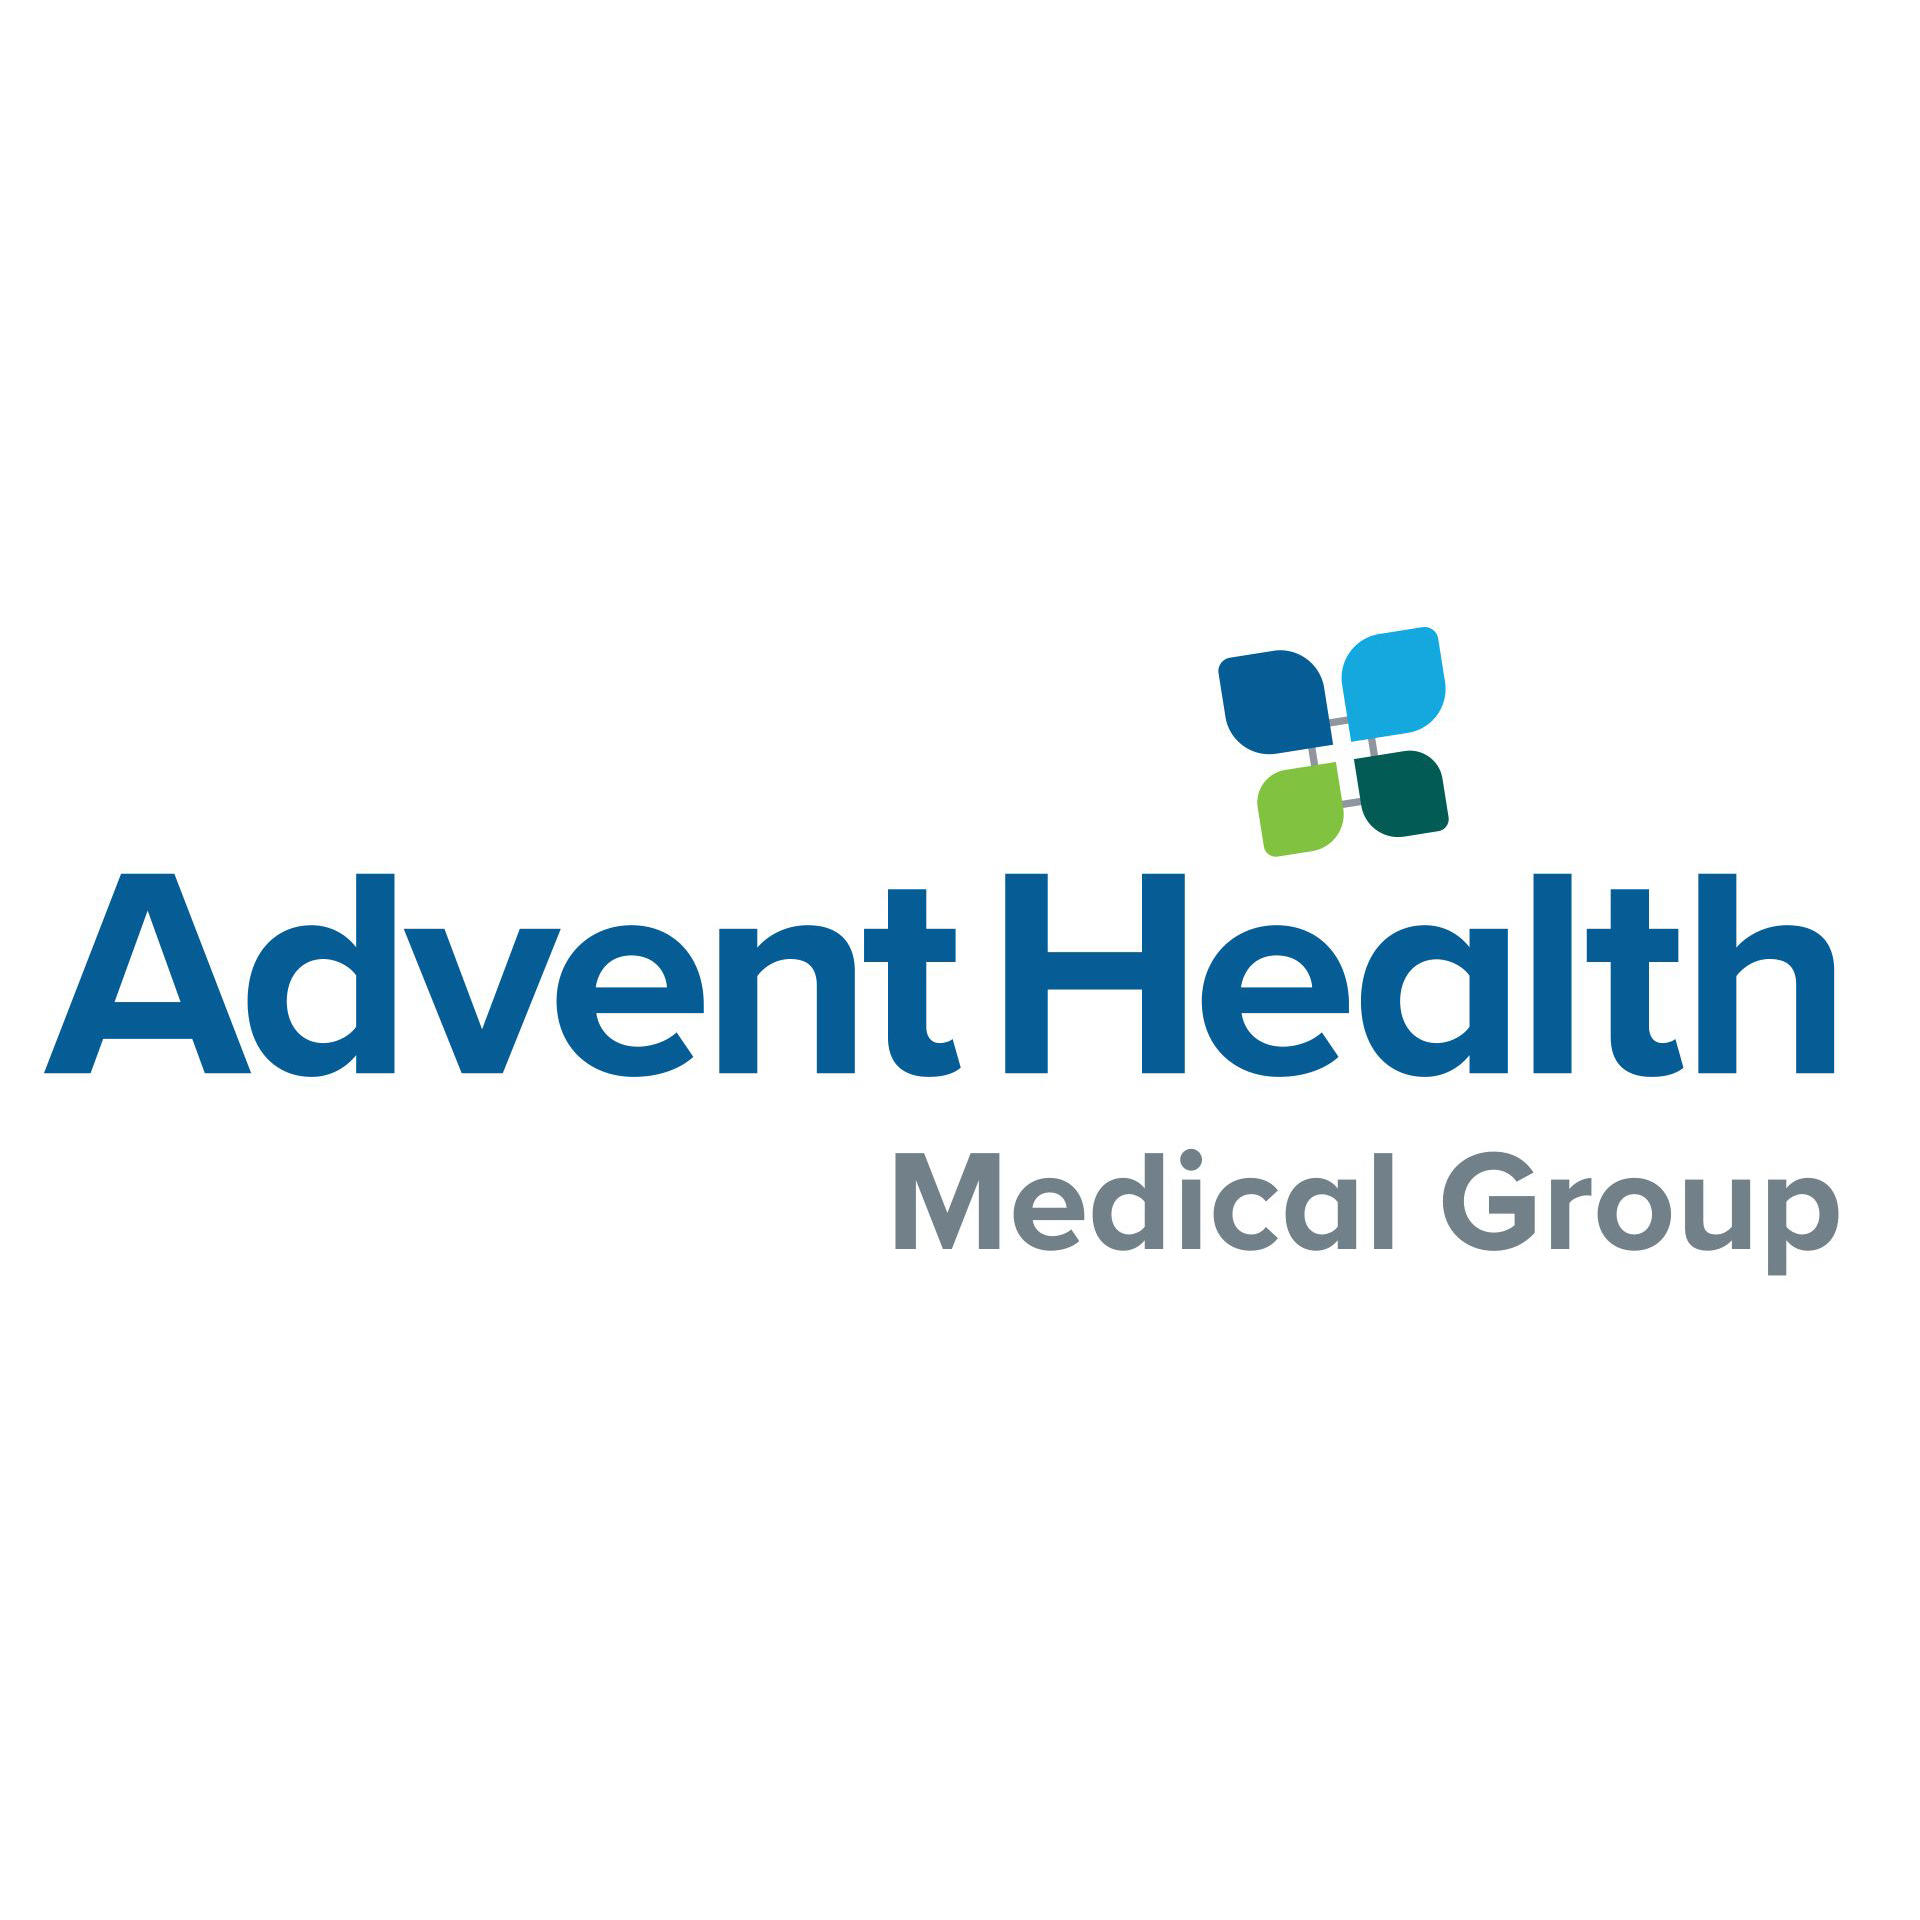 AdventHealth Medical Group Primary Care at Shawnee Crossings image 1